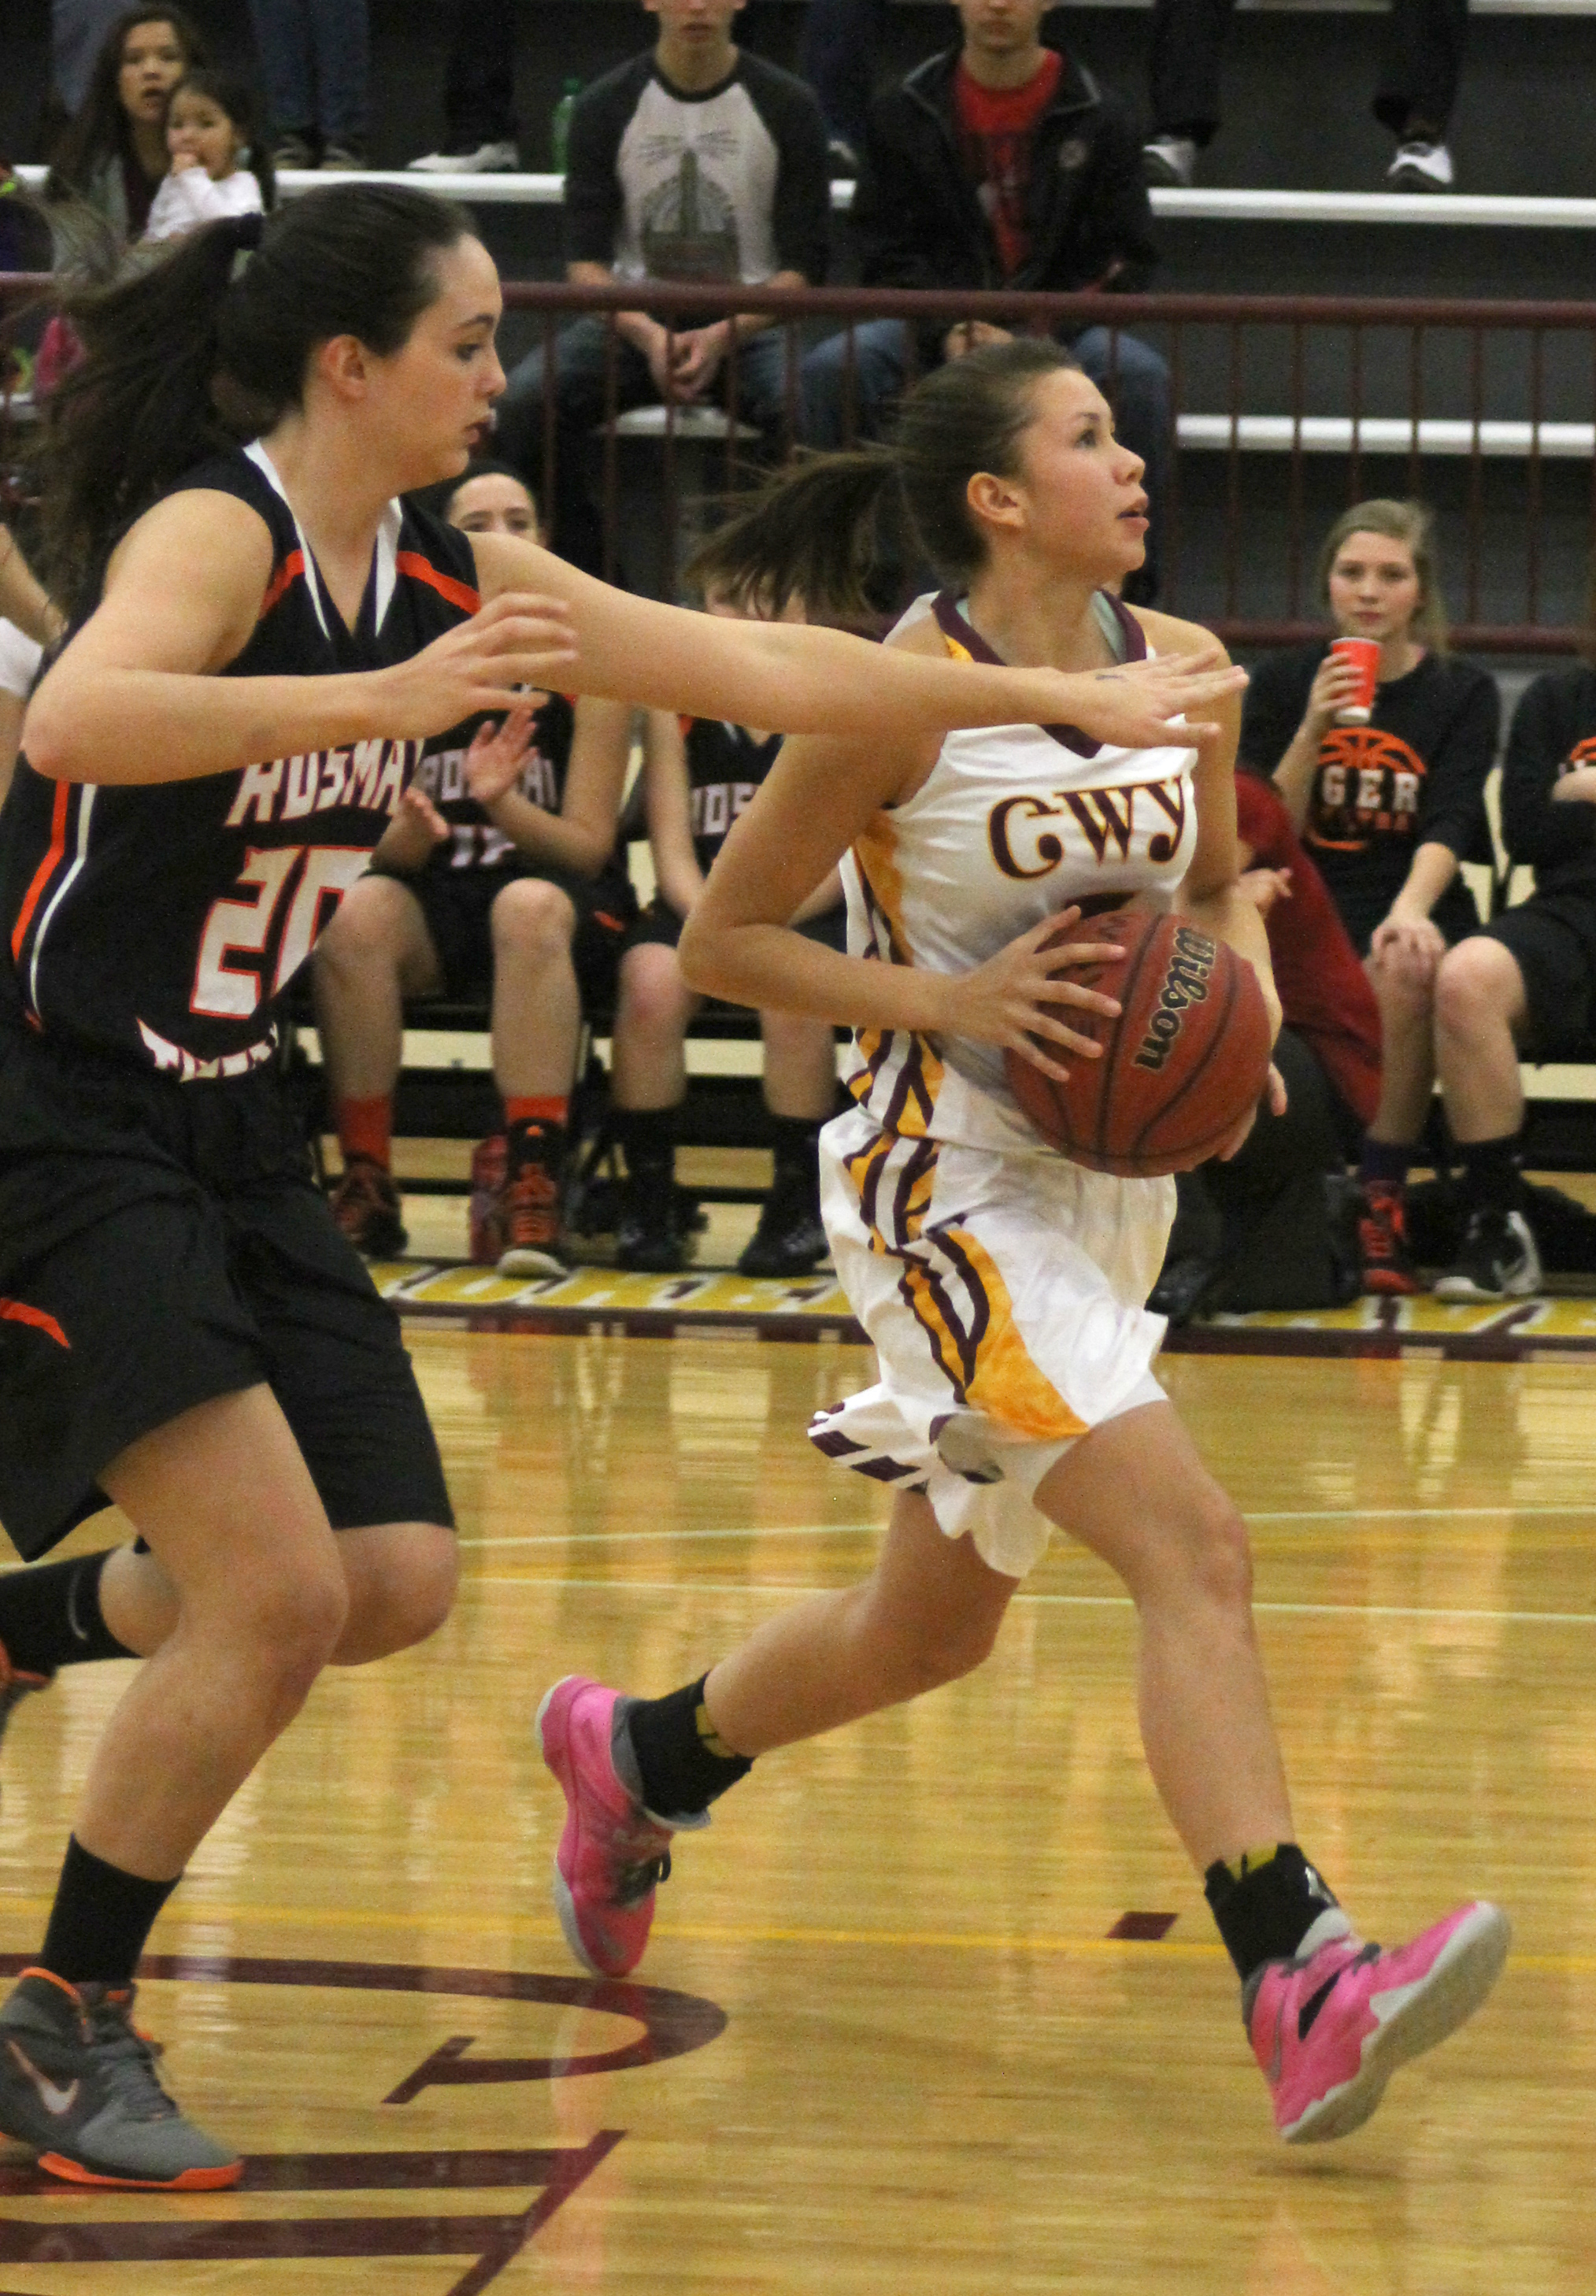 Kendall Toineeta runs past Rosman's Selina Hoxit (#20) en route to a lay-up in the first period of Friday's game.  Toineeta led Cherokee with 32pts, 7 rebounds, and 11 steals.